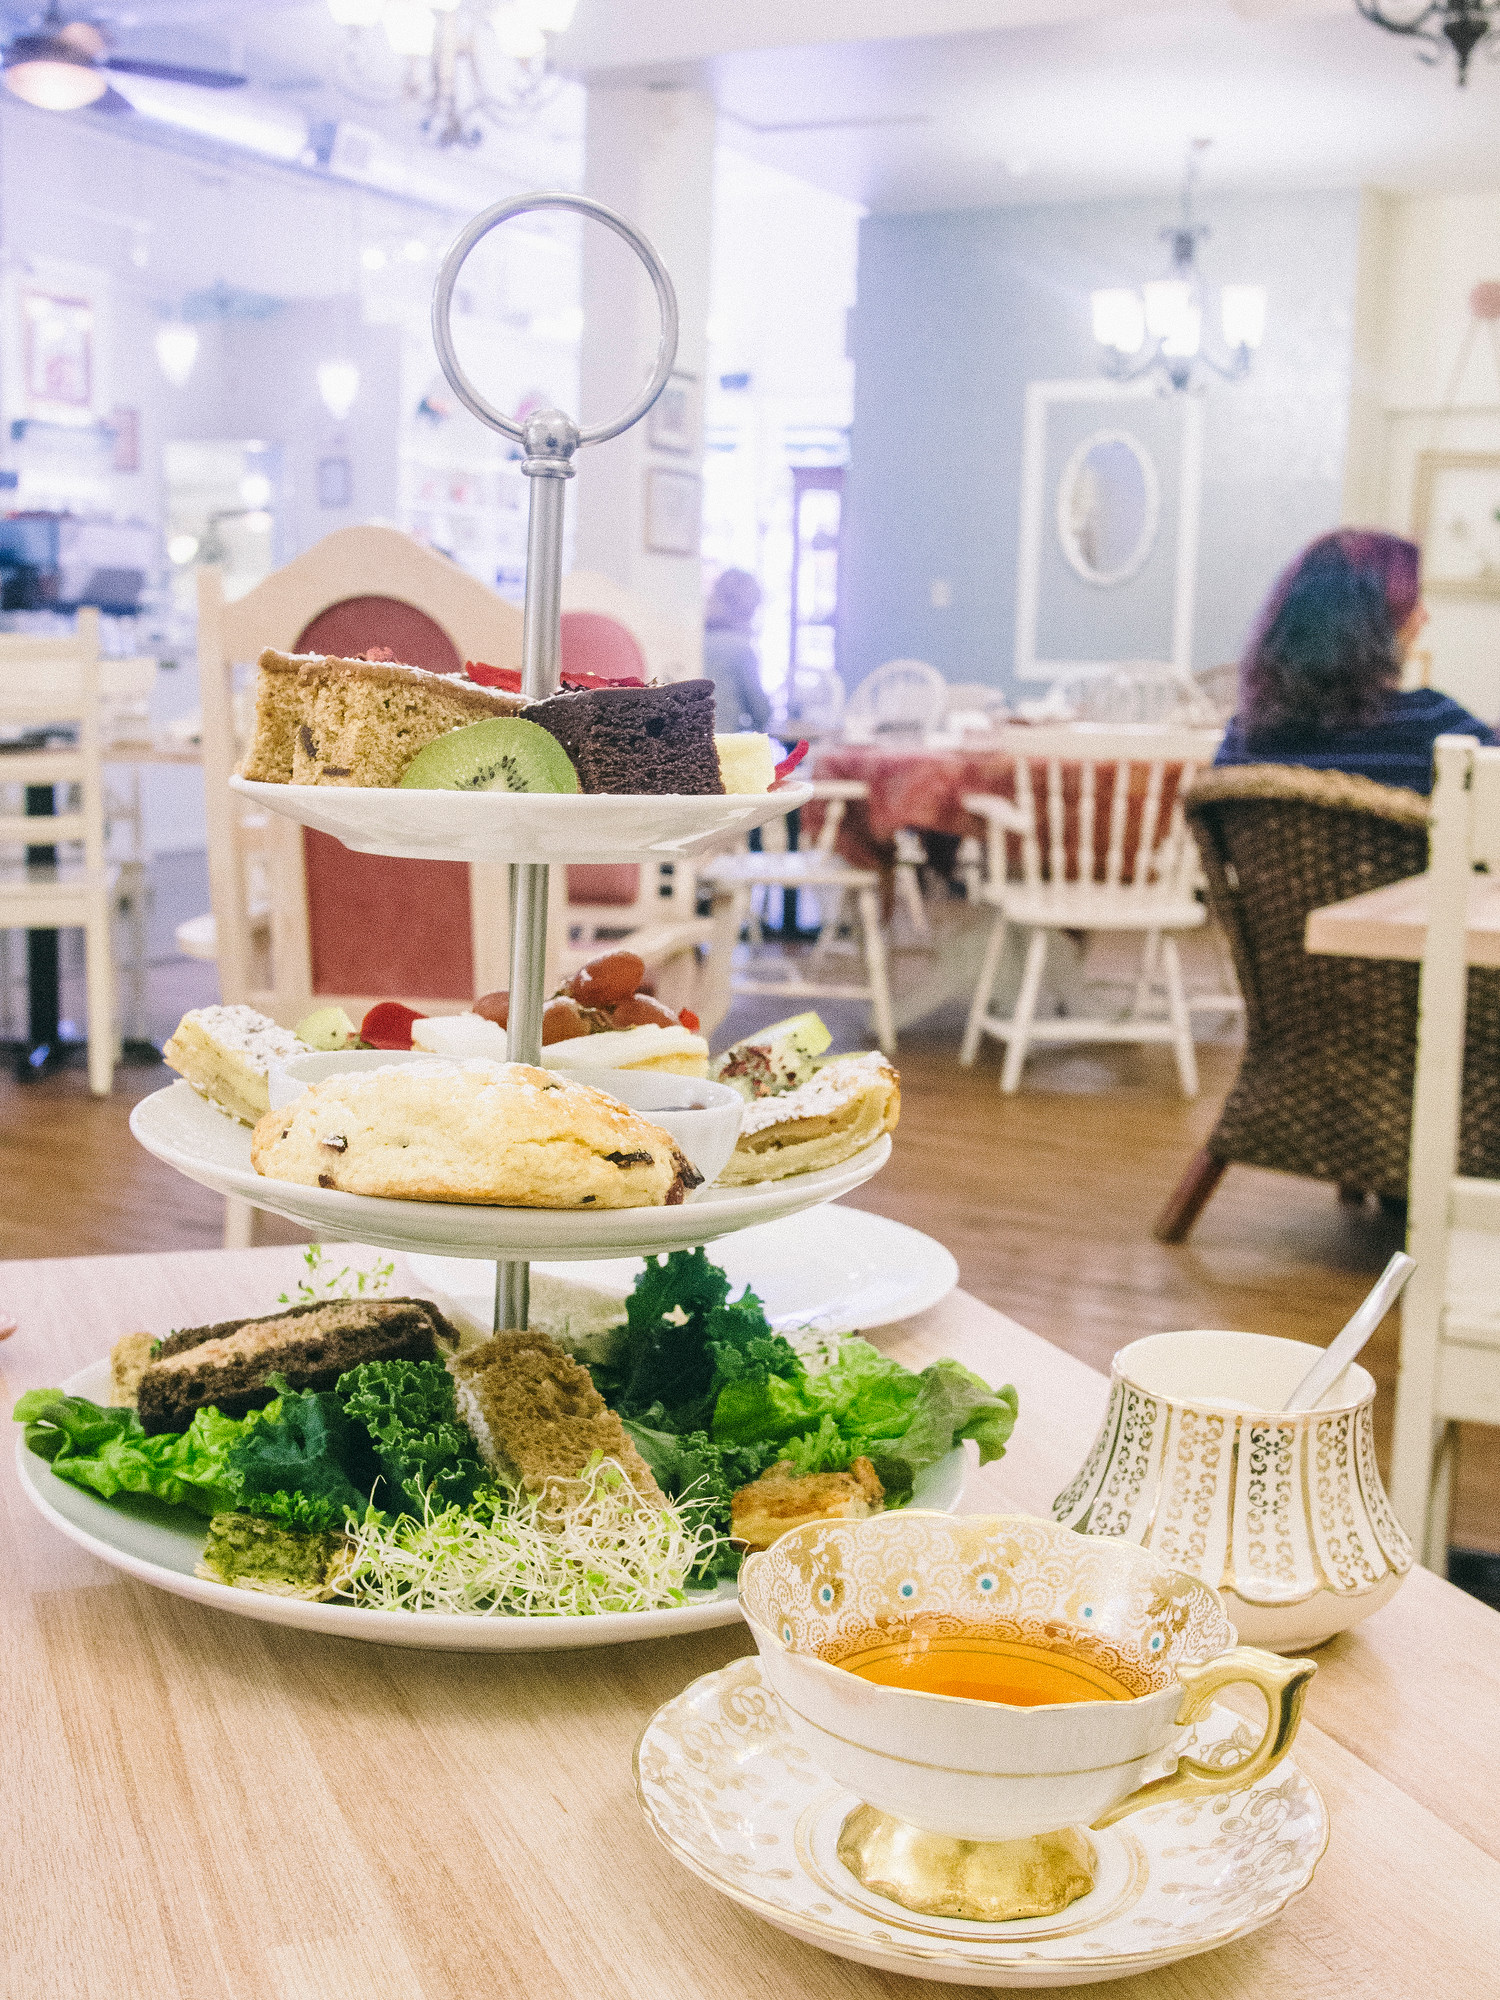 Venus Sophia Tearoom is one of the best vegetarian restaurants in Victoria. #vegetarian #vegan #Victoria